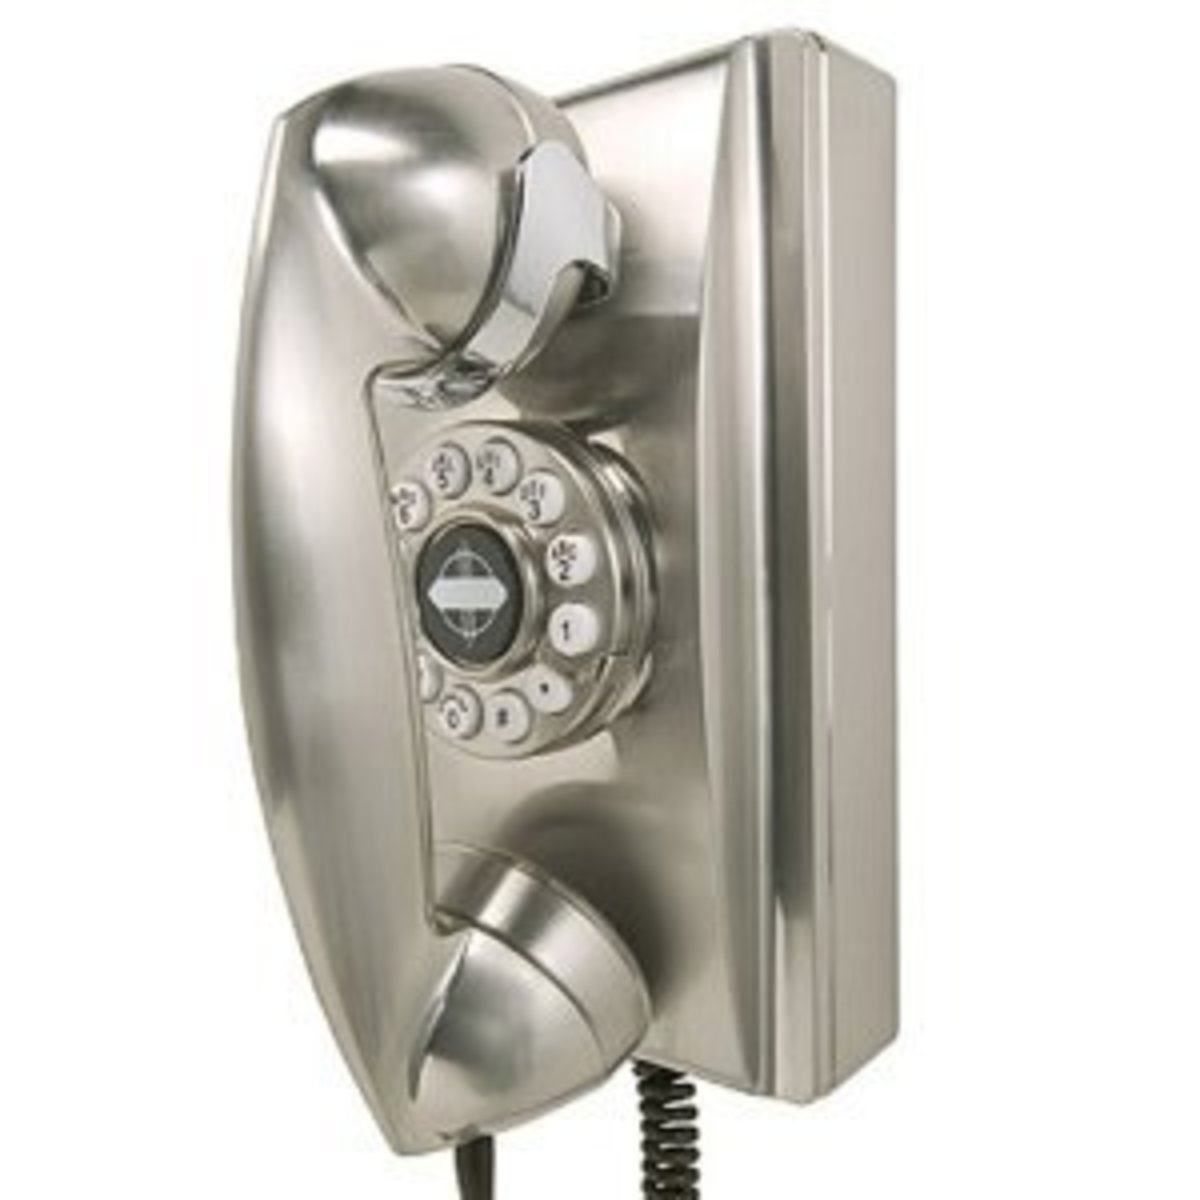 Crosley Wall Phone in Brushed Chrome. Not cordless but stylish and unusual.